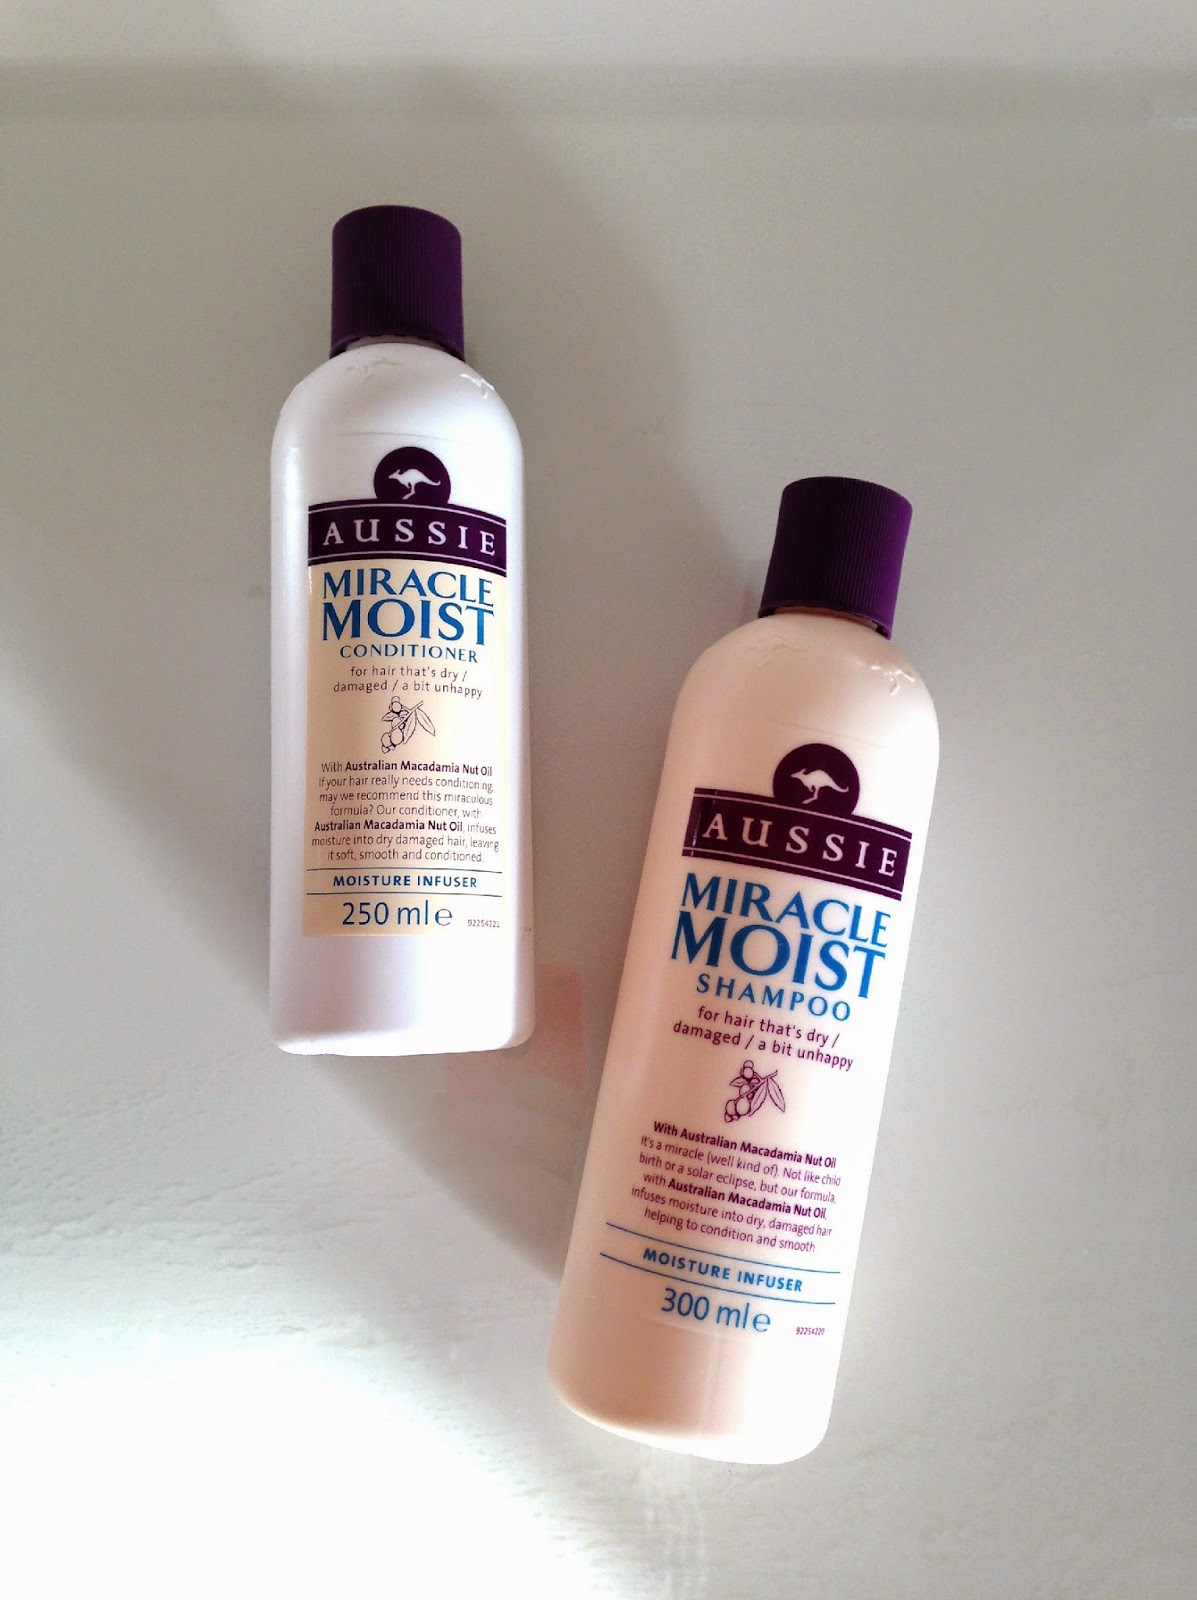 Aussie Miracle Moist Shampoo and Conditioner Review